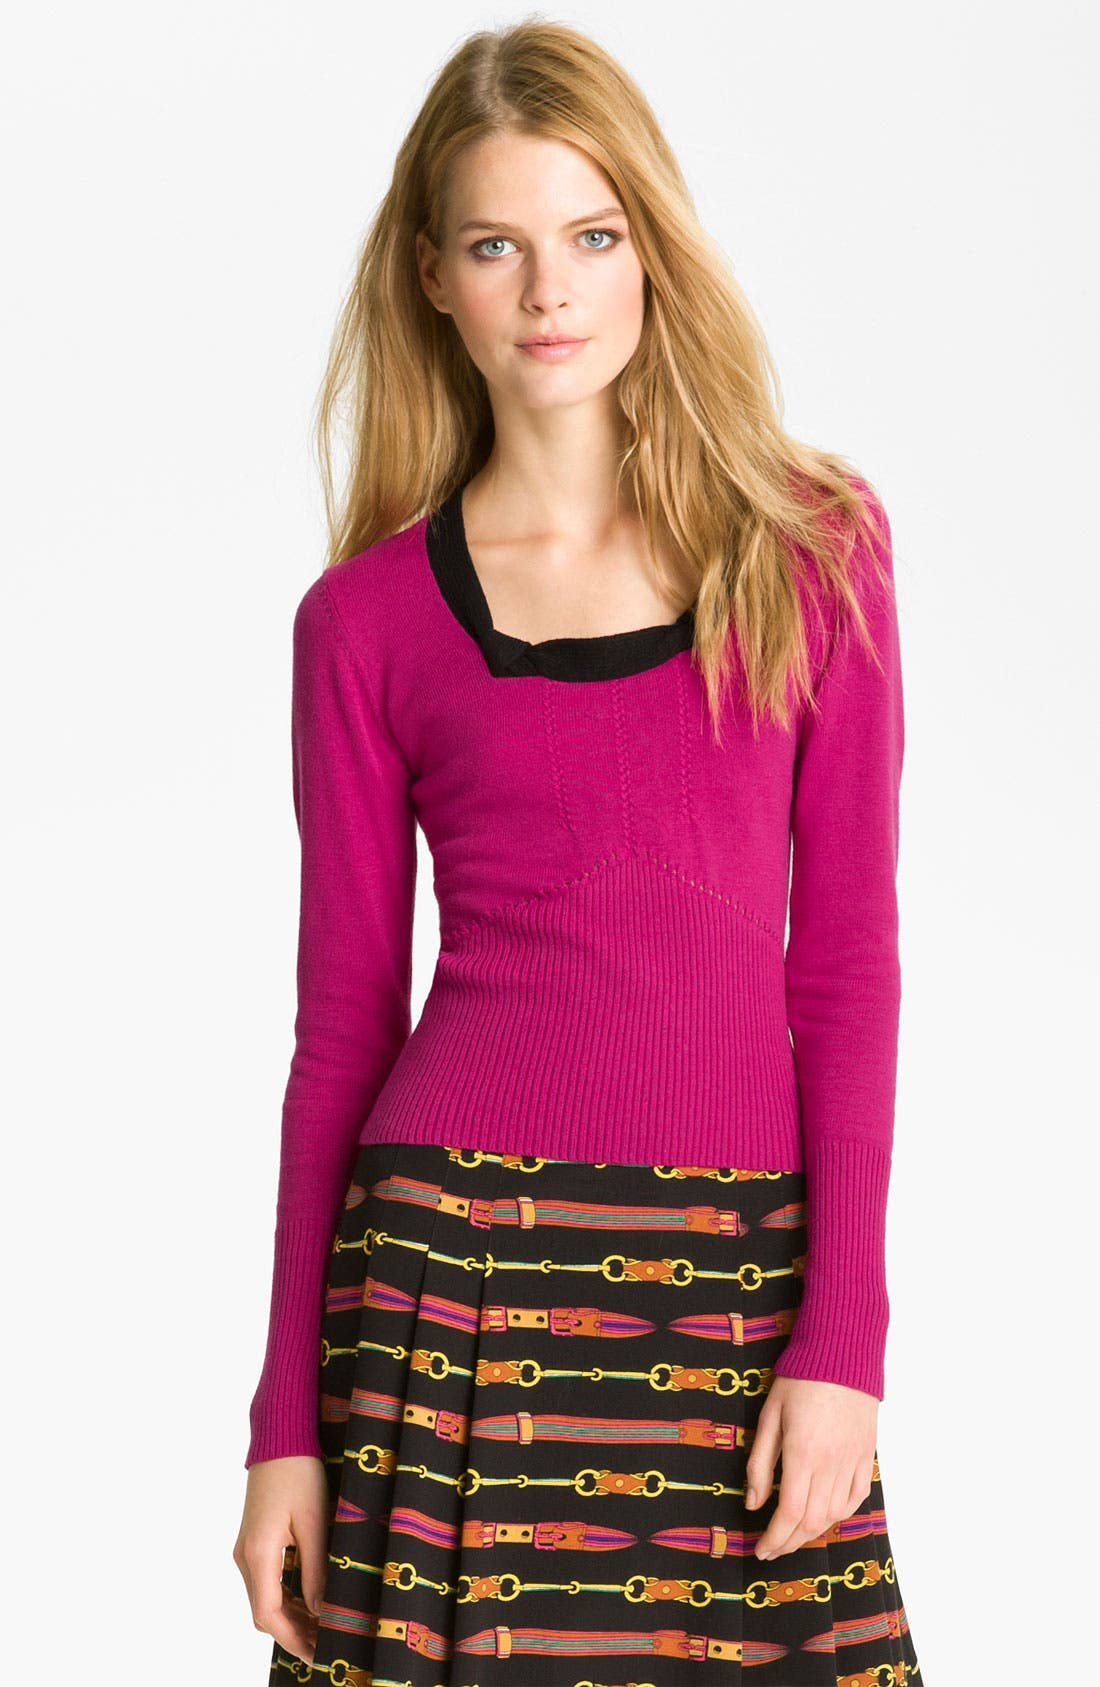 Alternate Image 1 Selected - Nanette Lepore 'Picturesque' Pullover Sweater